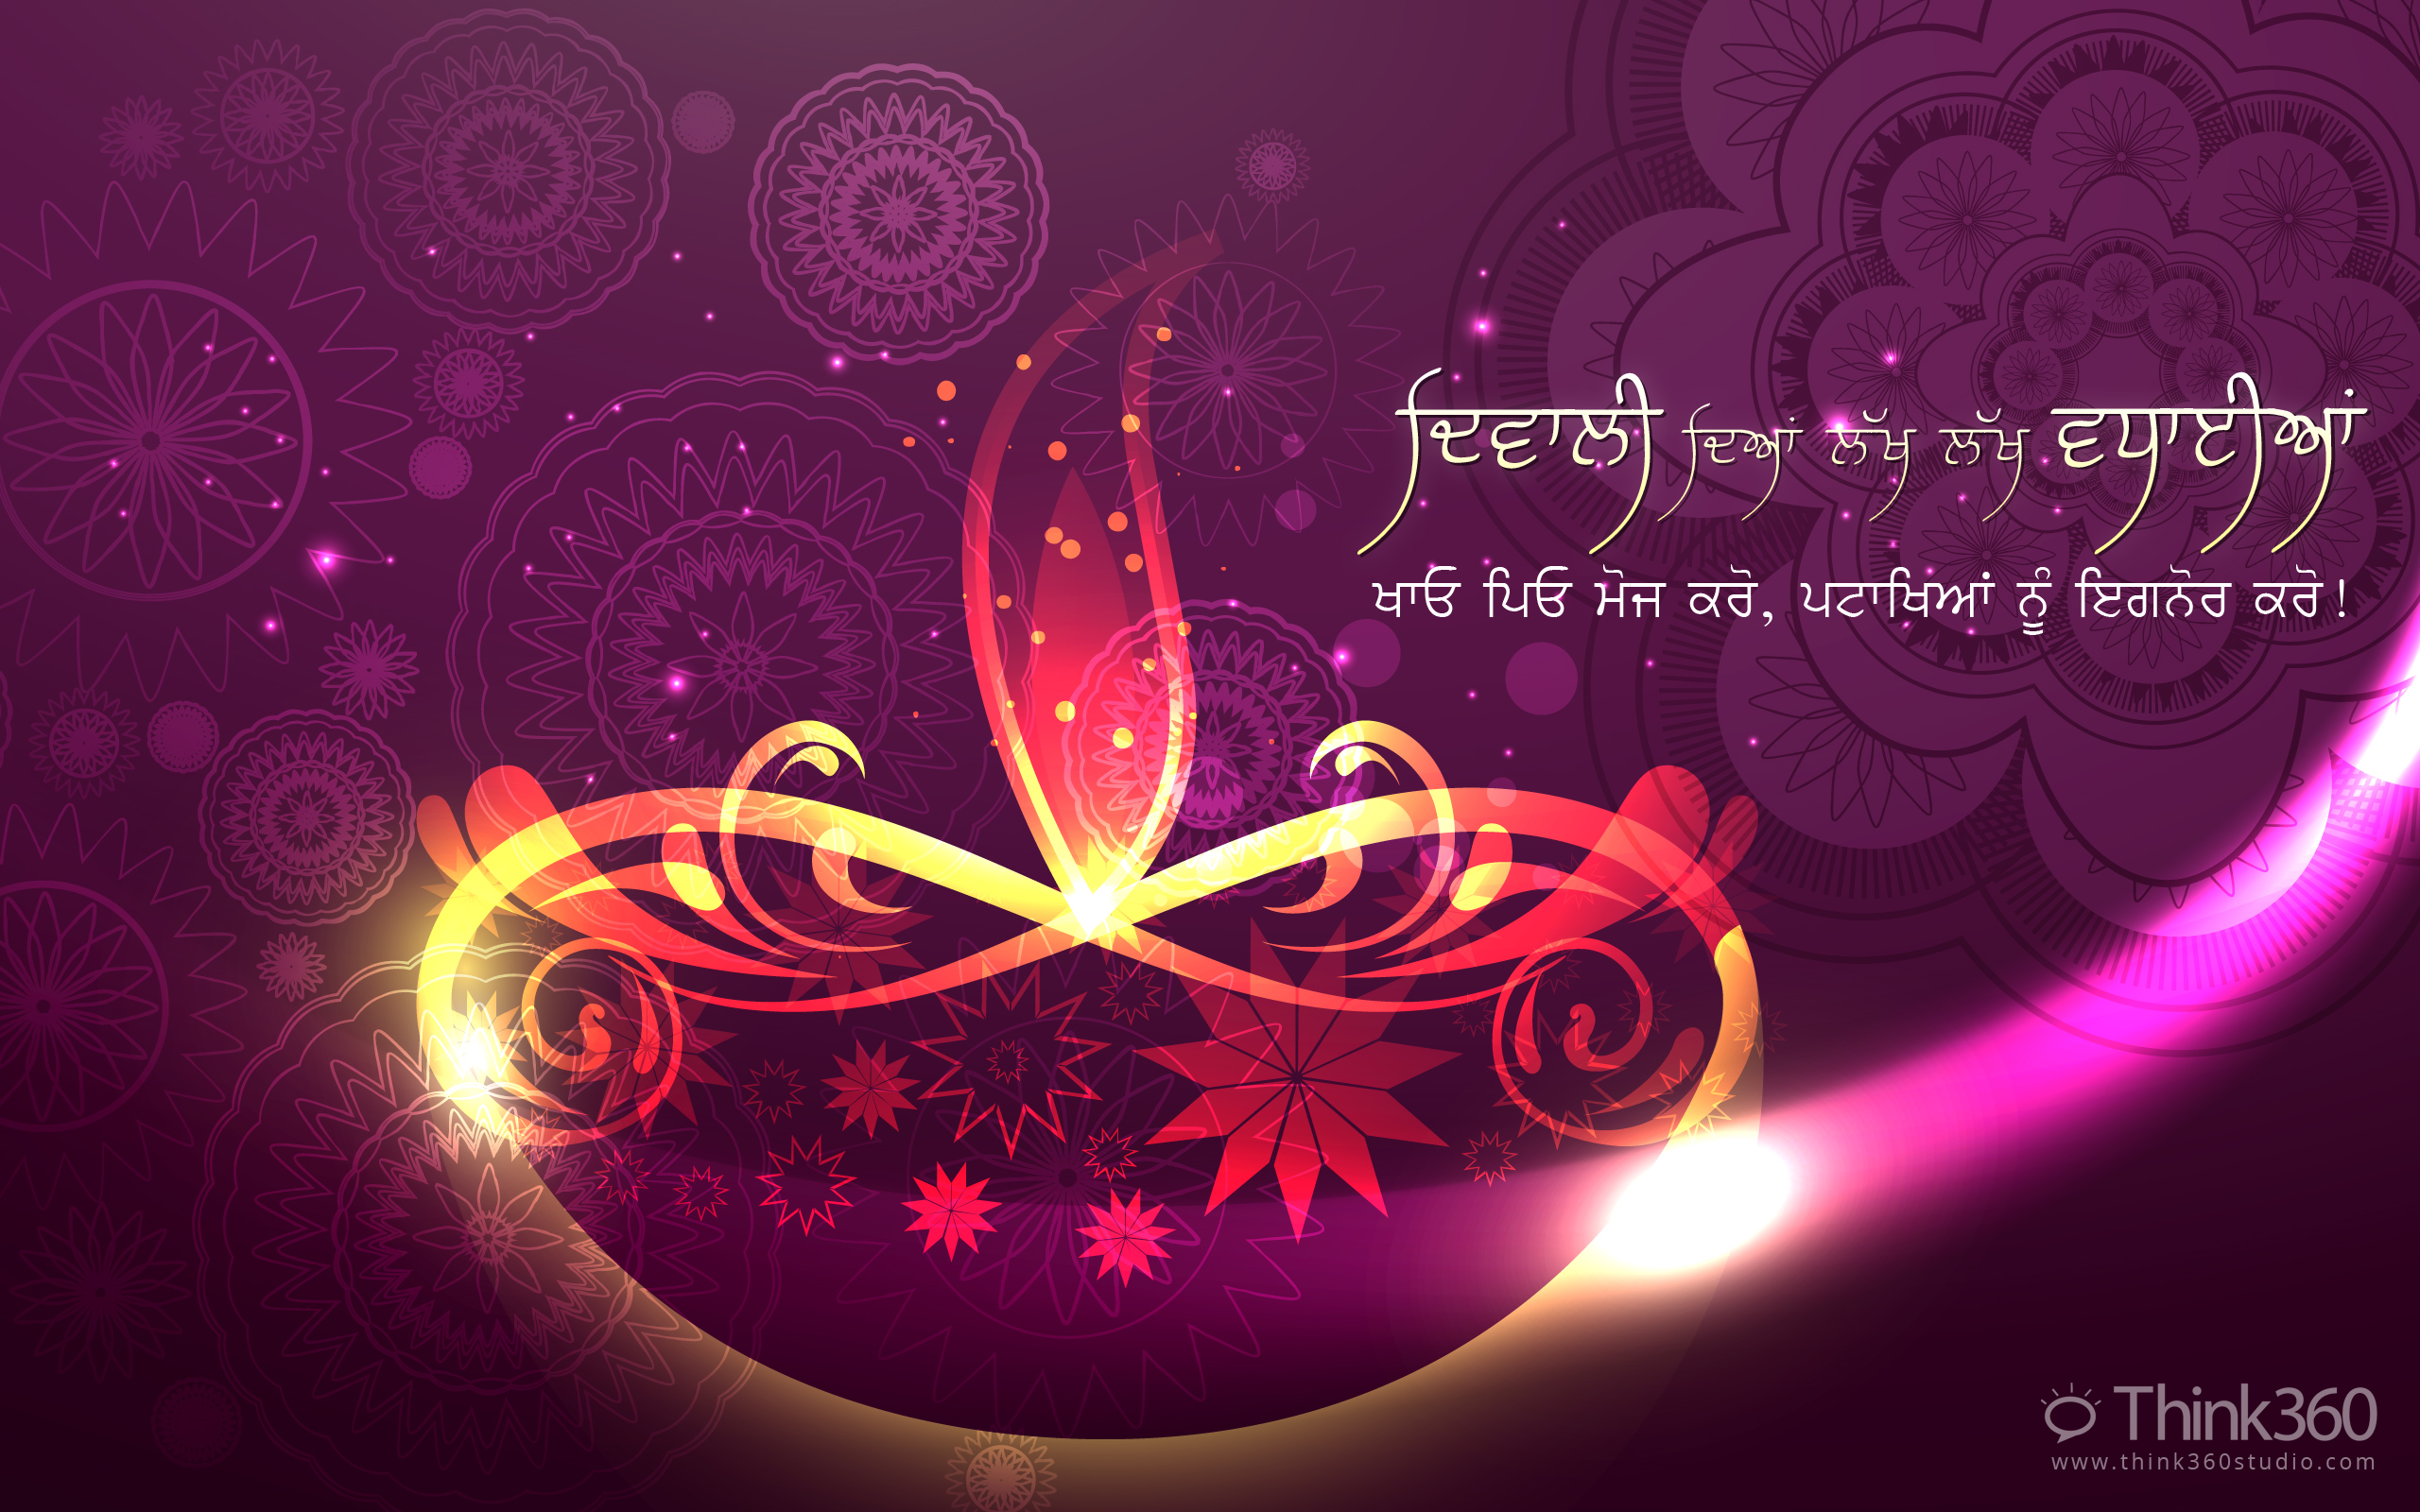 Happy Diwali And Dhanteras Wallpapers: Happy Diwali Wallpaper Pack 2013 By Prince Pal By